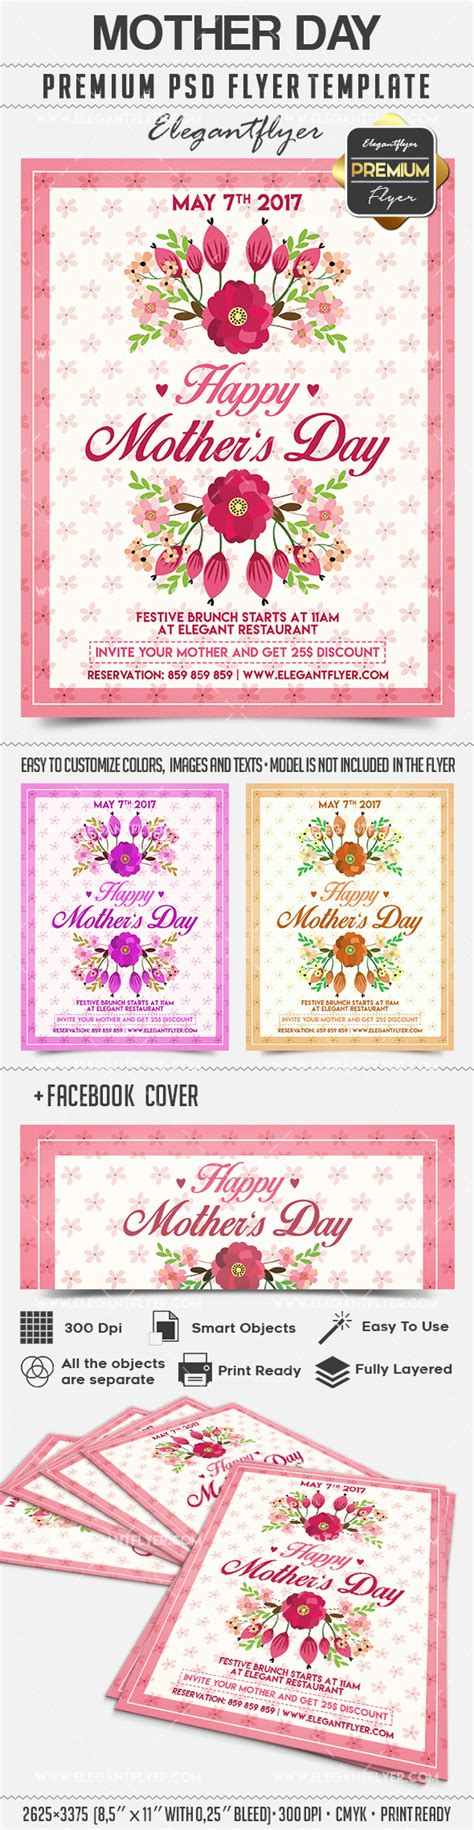 mothers day card psd template flyer for day by elegantflyer